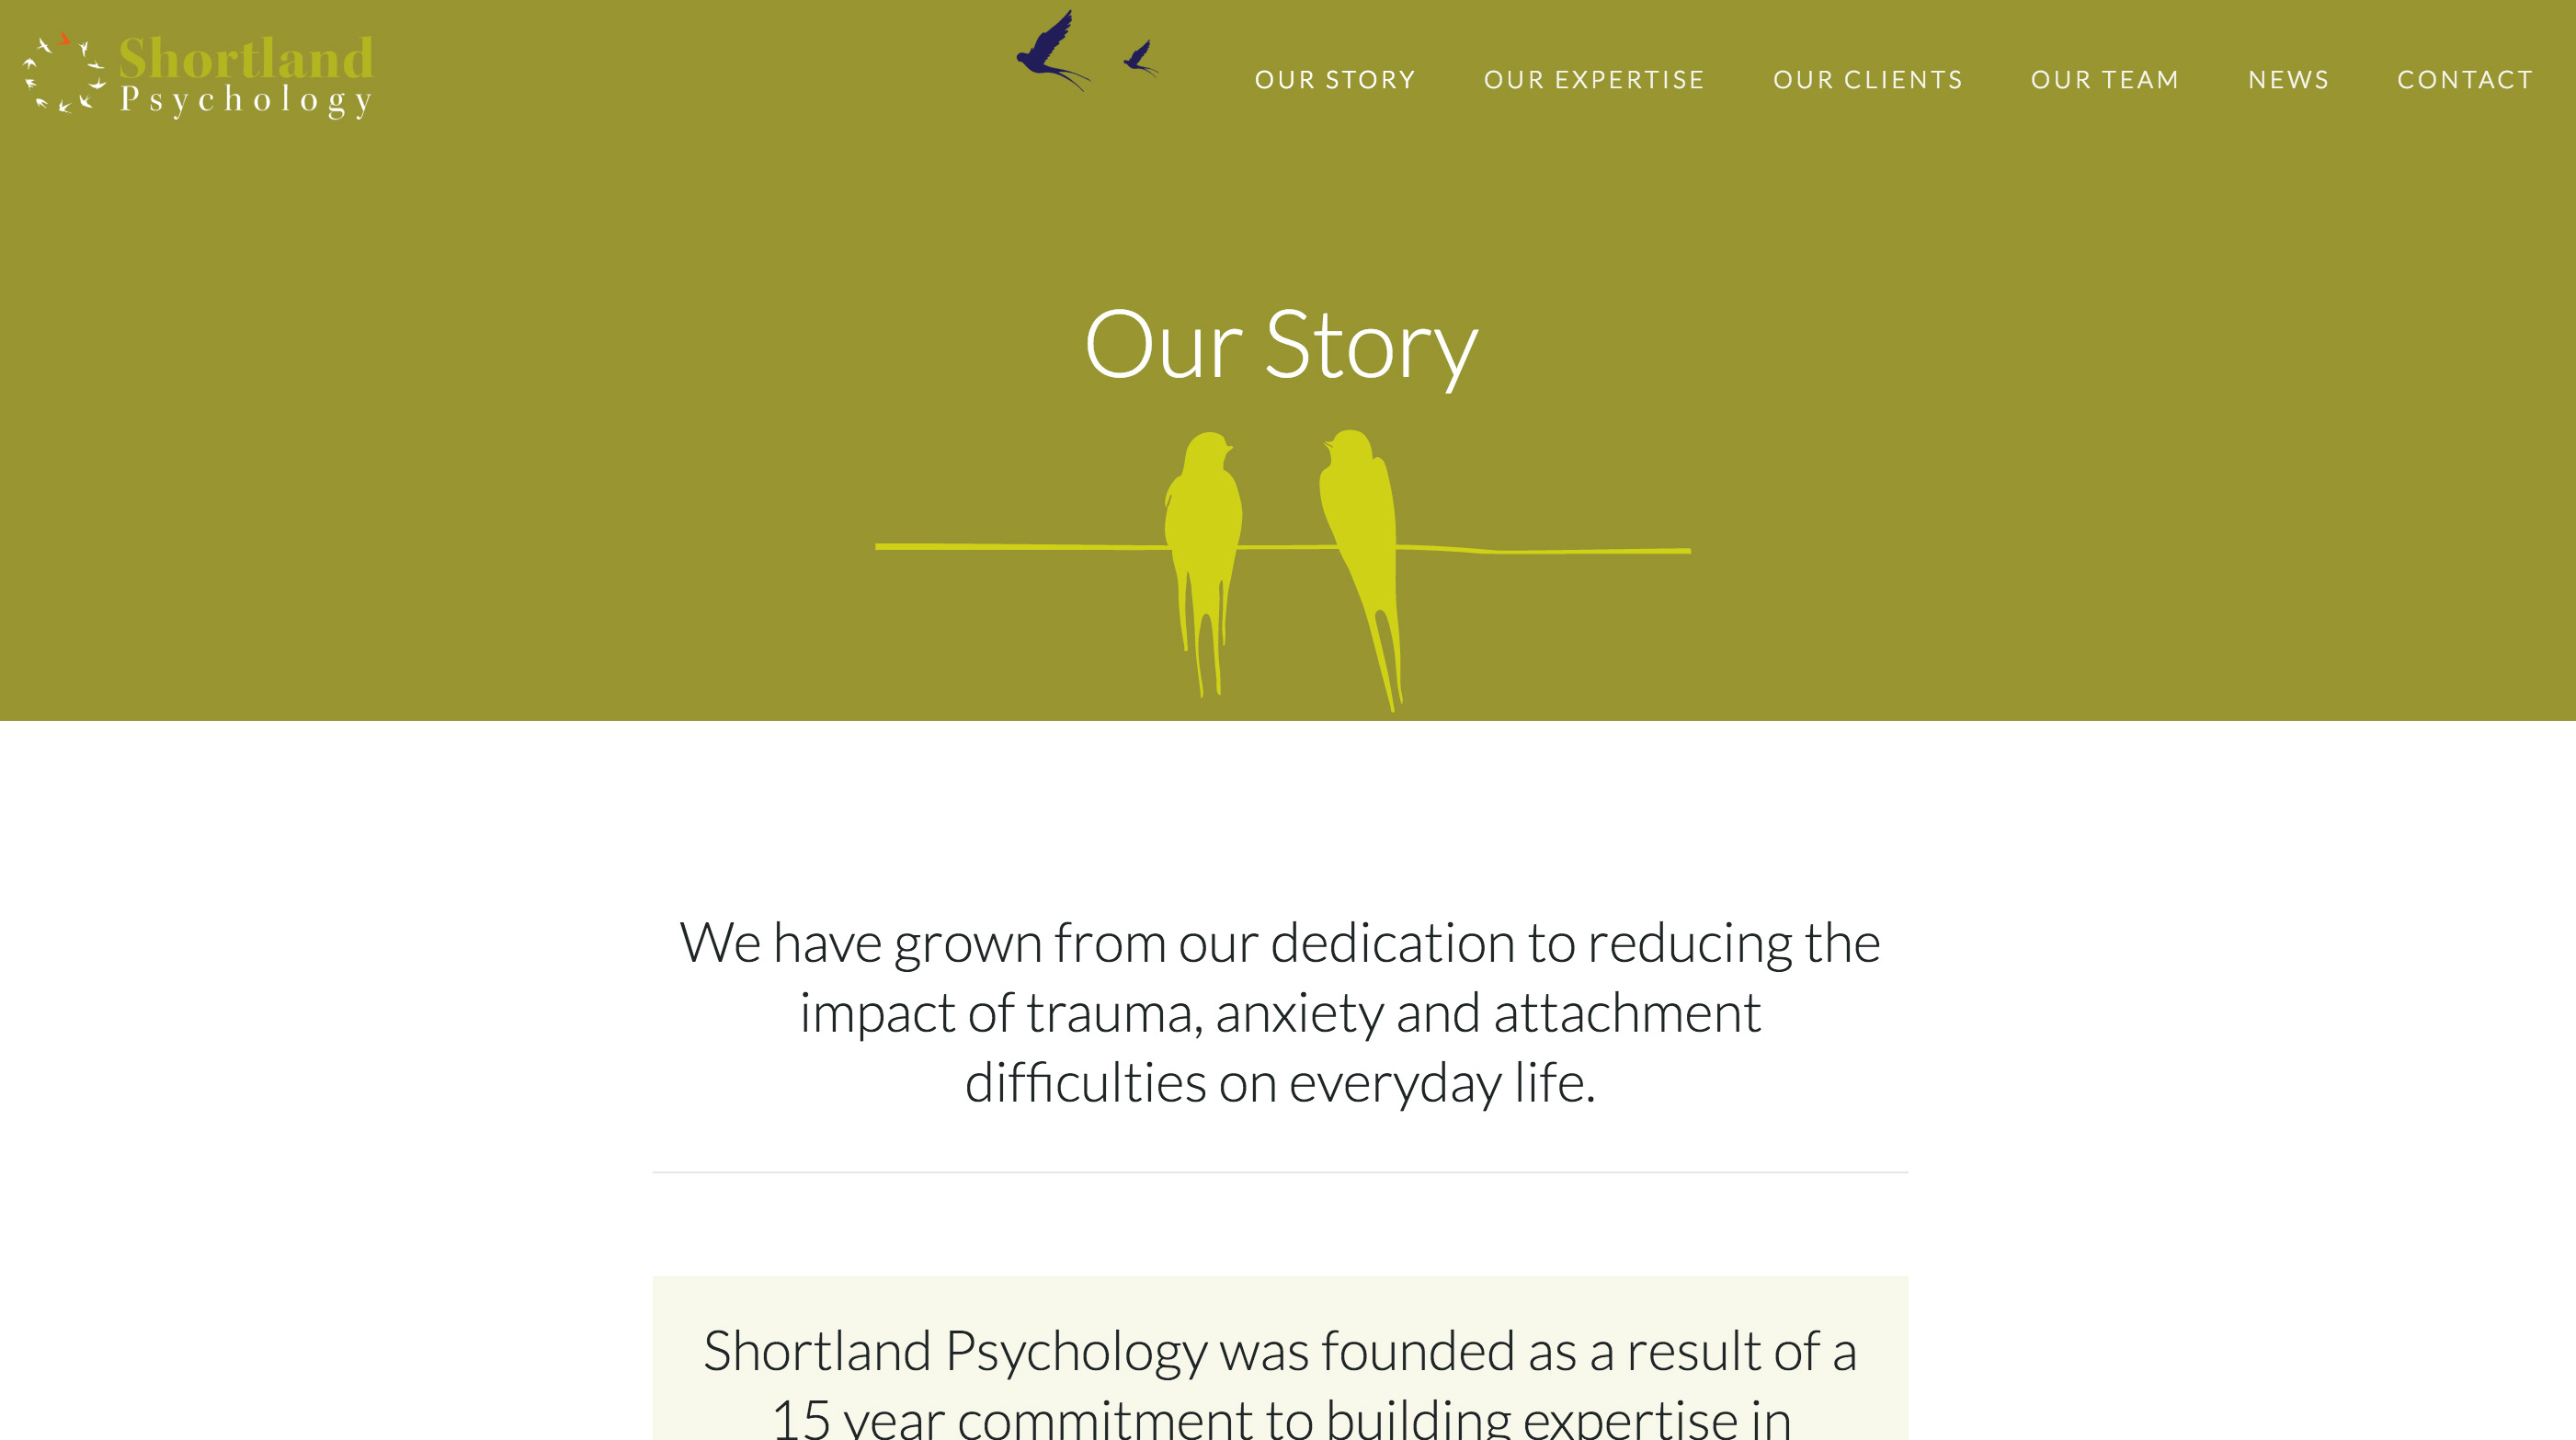 Shortland Psychology